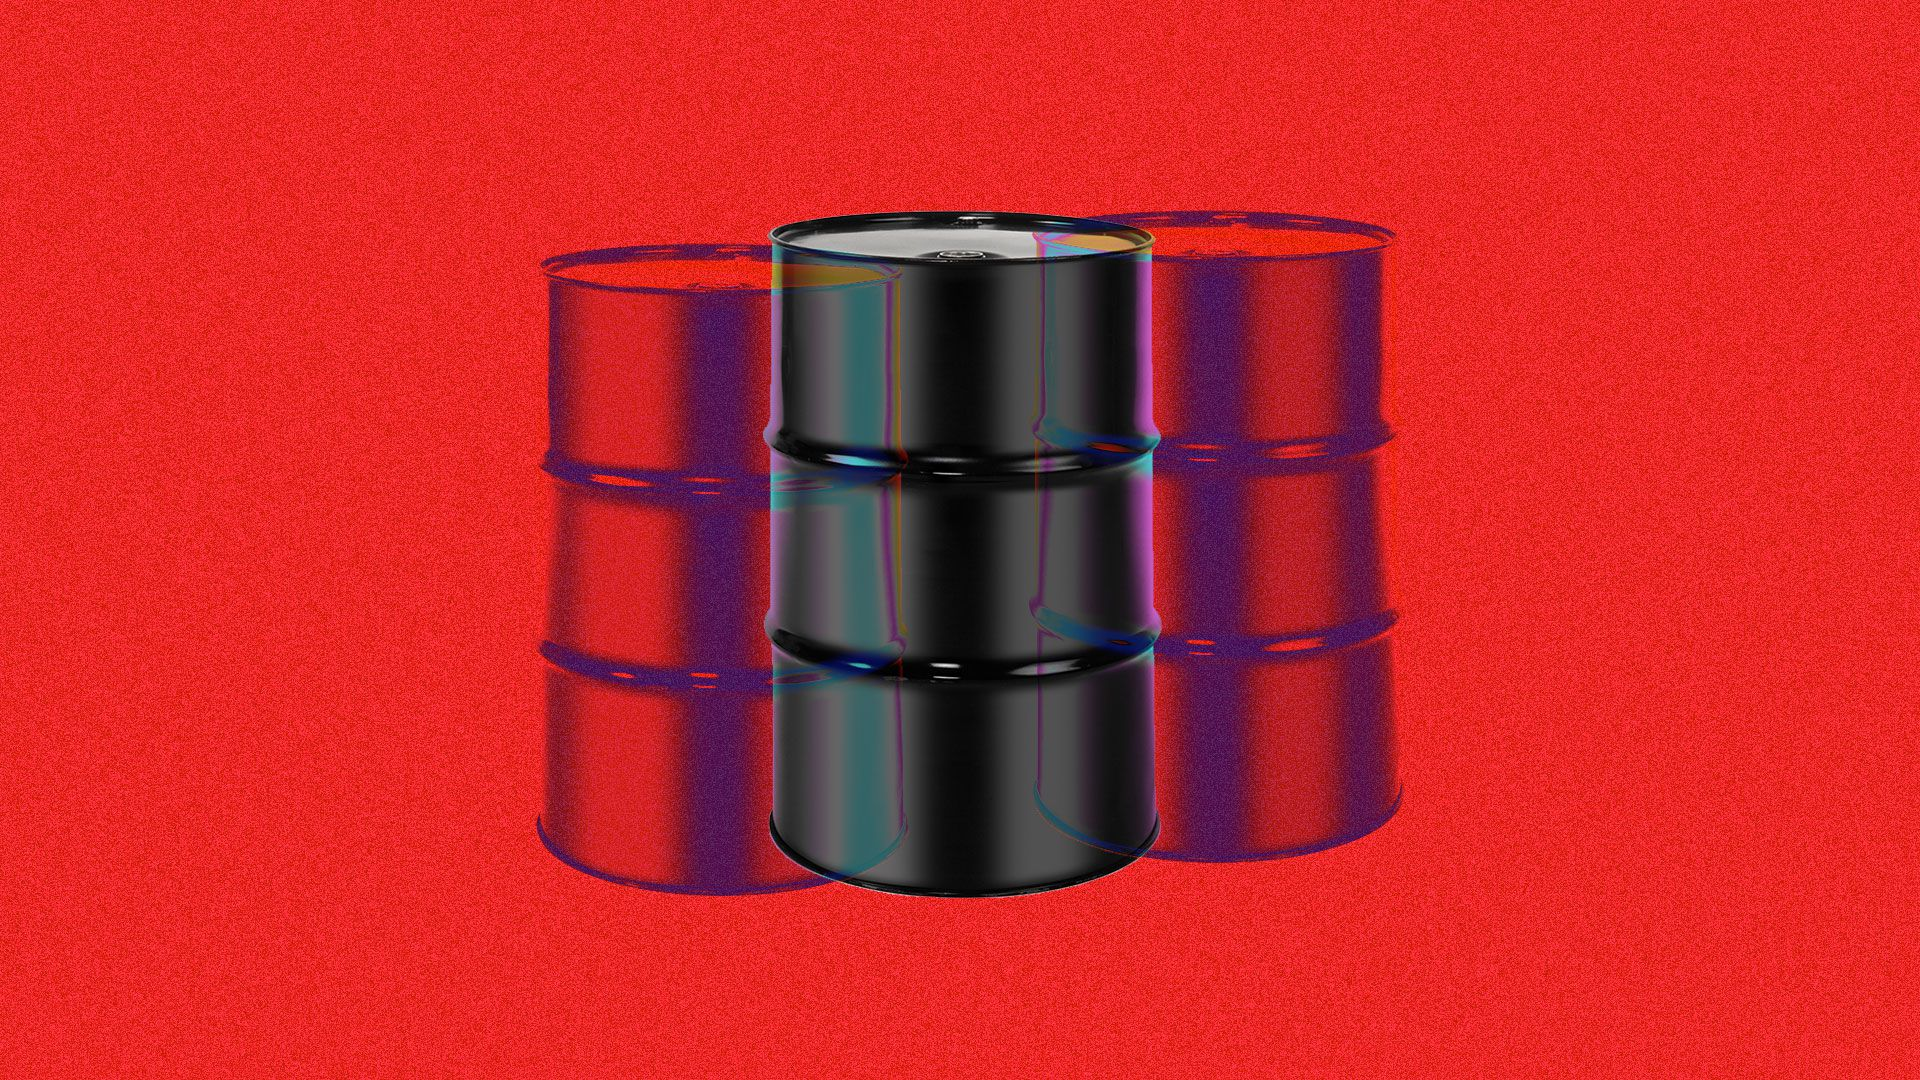 three oil barrels against a red background